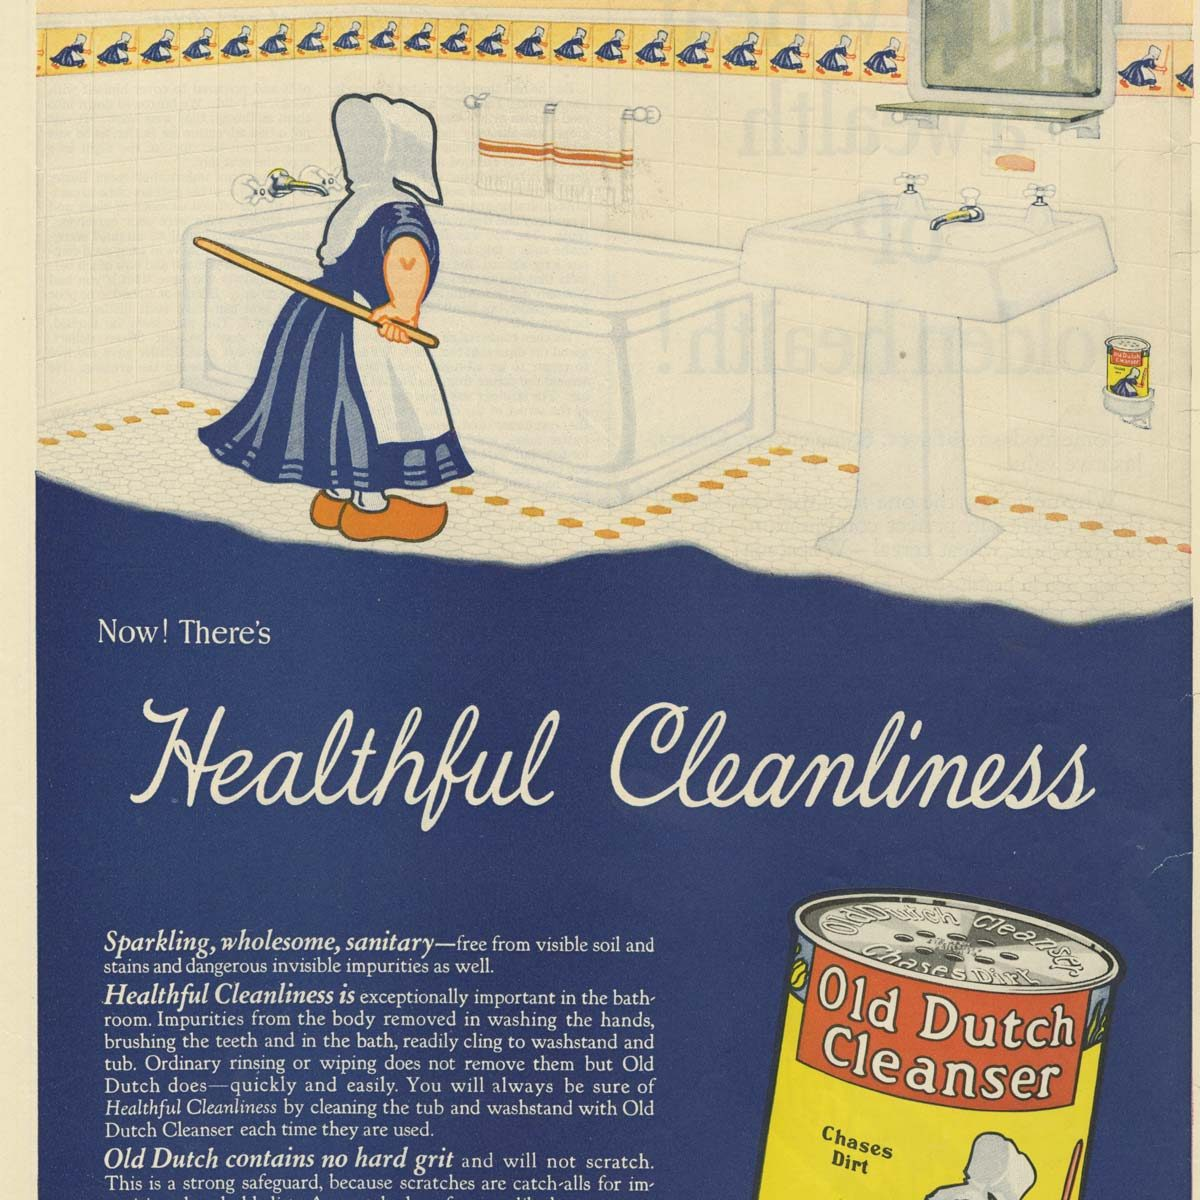 Old Dutch Cleanser ad